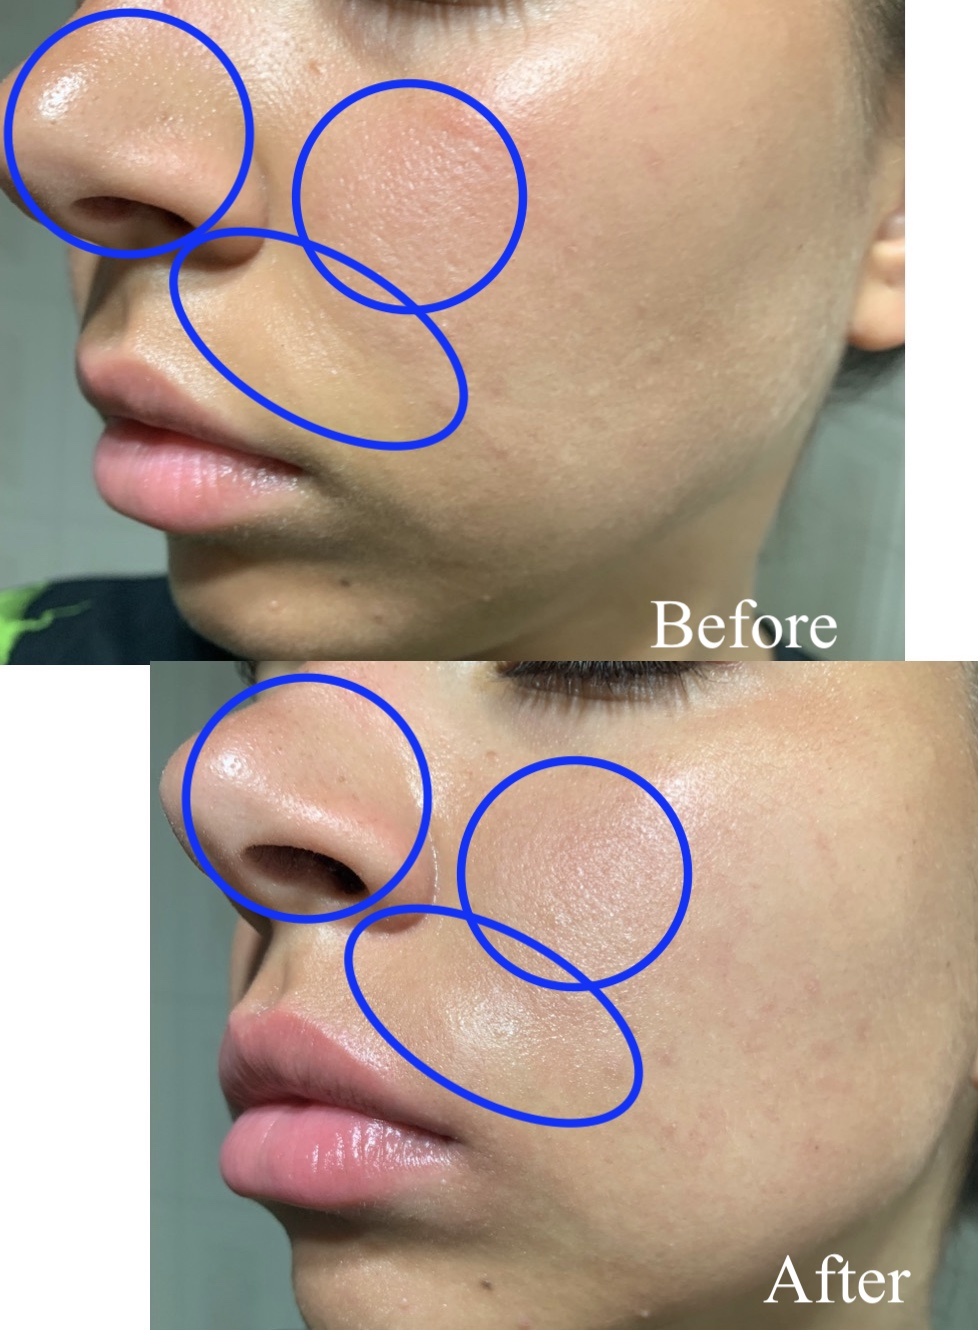 Some benefits that you'll get from the first use: - +Skin texture is greatly improved+Pores are less noticeable+Fine lines are less noticeable+Lips are plumped up and lines are less noticeable++Before and After here is after 5 minutes apart.